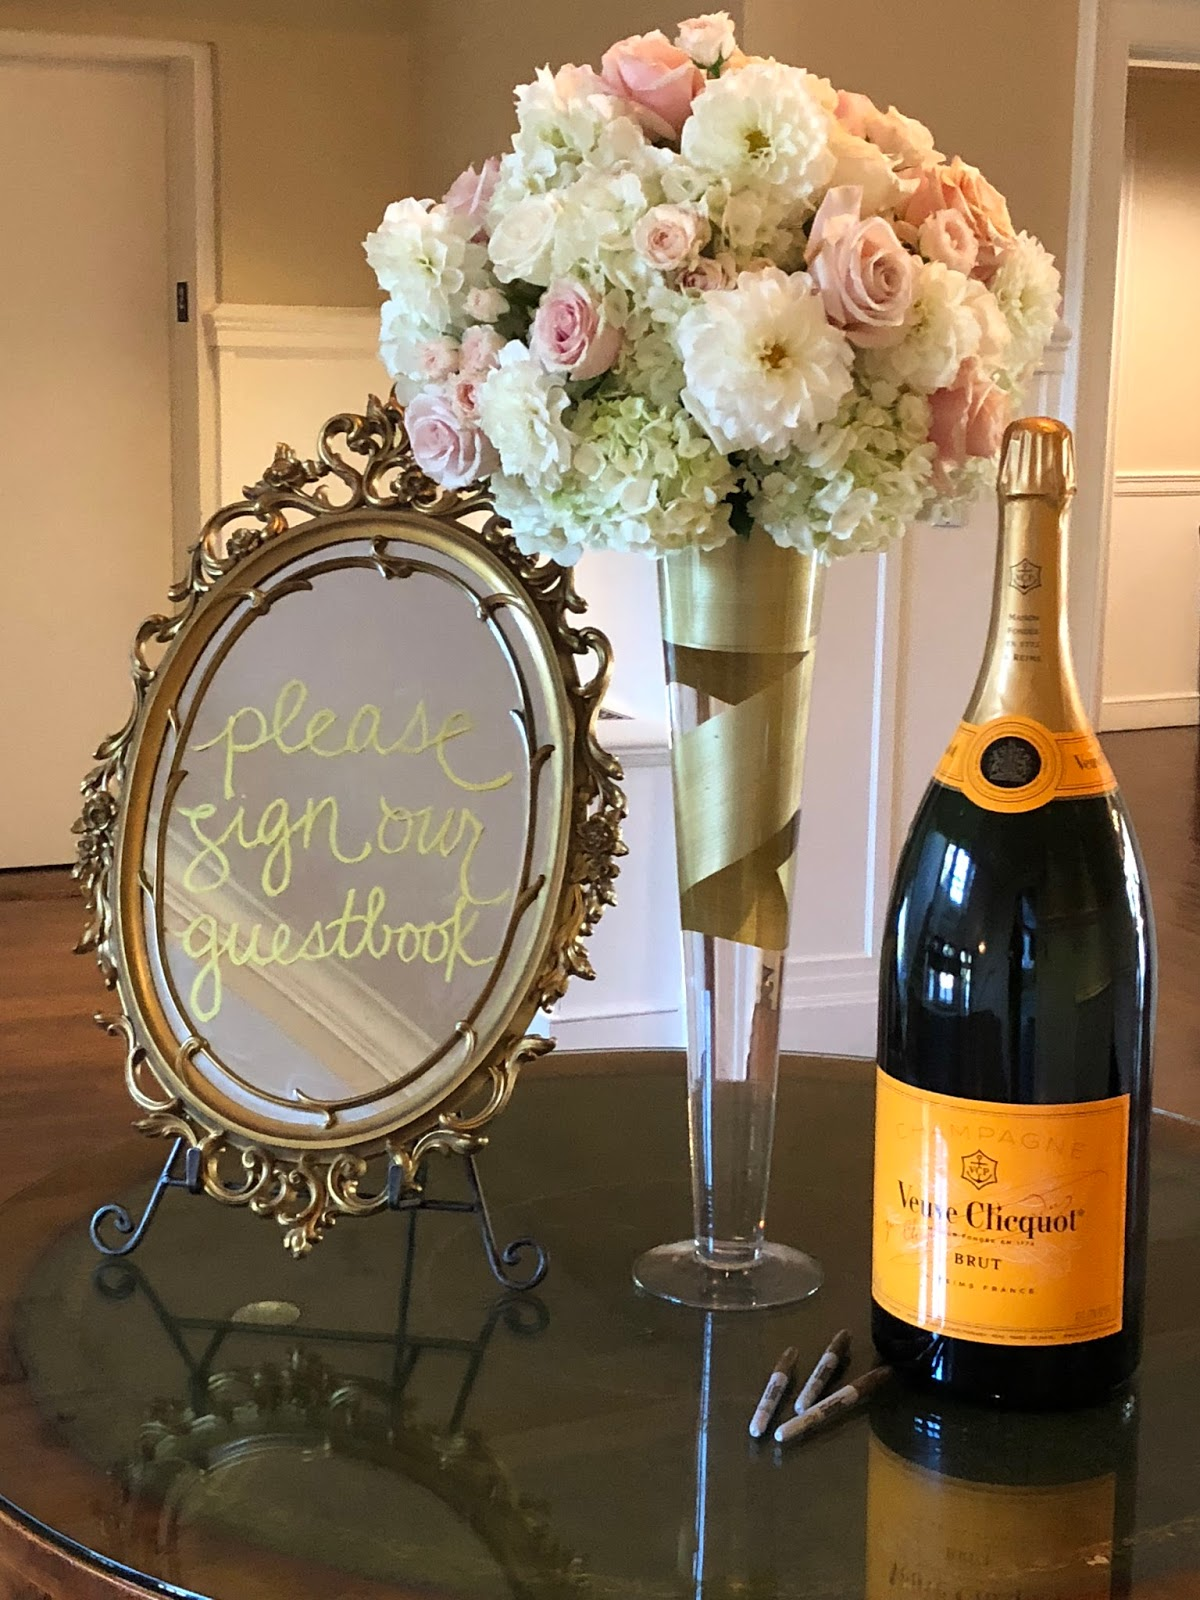 boston wedding planners, where to get married in boston, country club wedding new england, florals by jeri, florists in boston, wedding flowers, boston wedding planner, guest book ideas, large bottle of champagne